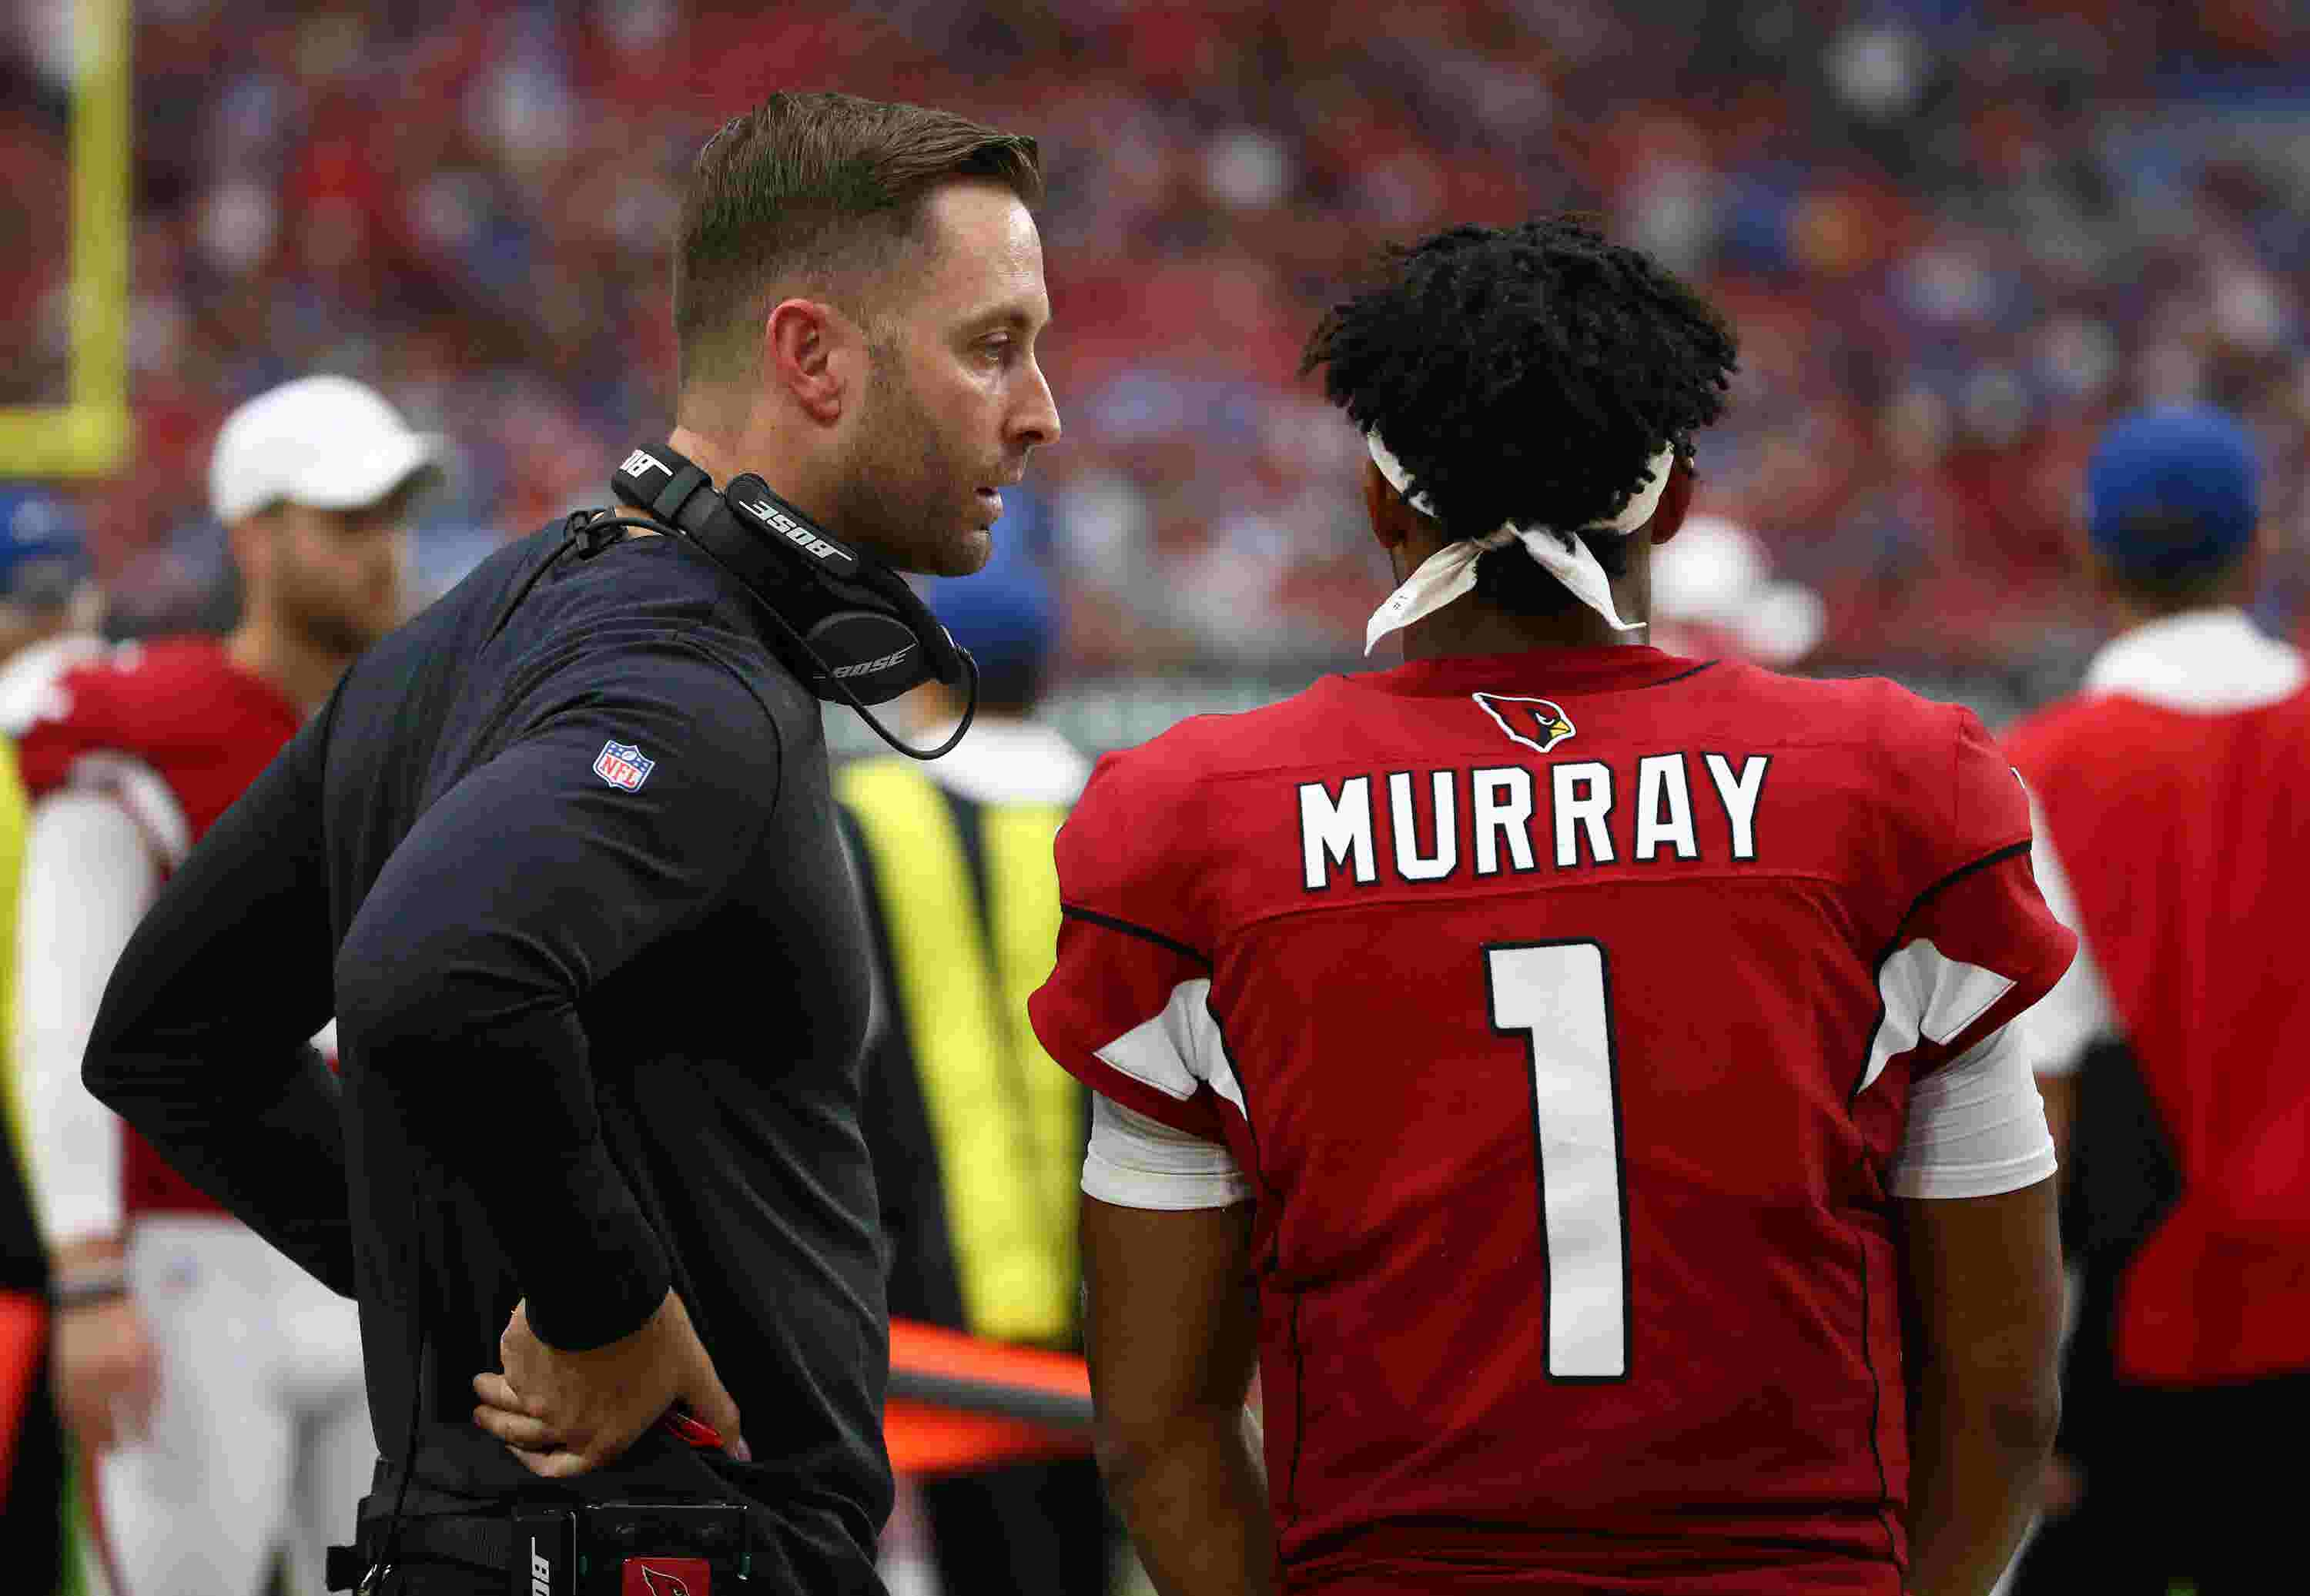 Arizona Cardinals depth chart: Roster changes before Week 2 NFL game at Baltimore Ravens